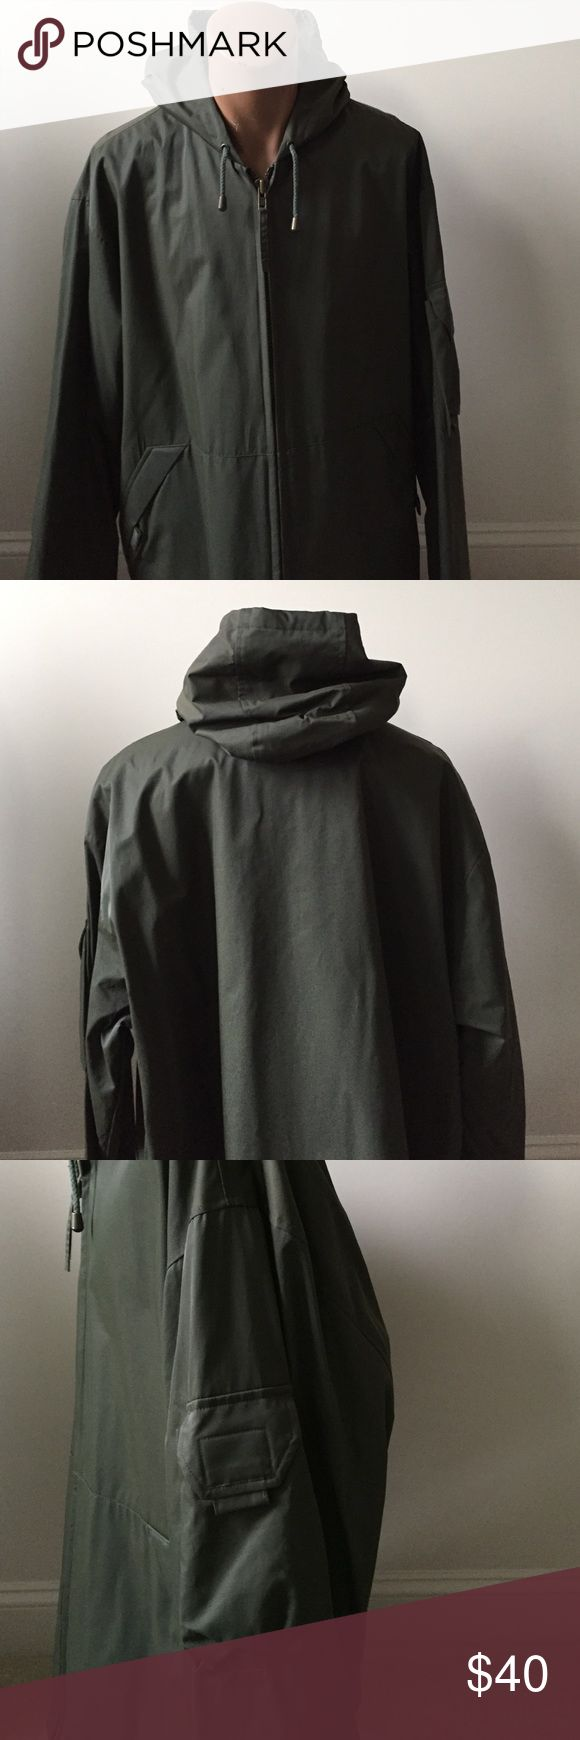 Marc New York men's raincoat. Olive lined military nylon raincoat. Front pockets and one side pocket. Zips up front with drawstring for hood and at waist. New with tags. Marc New York Jackets & Coats Raincoats